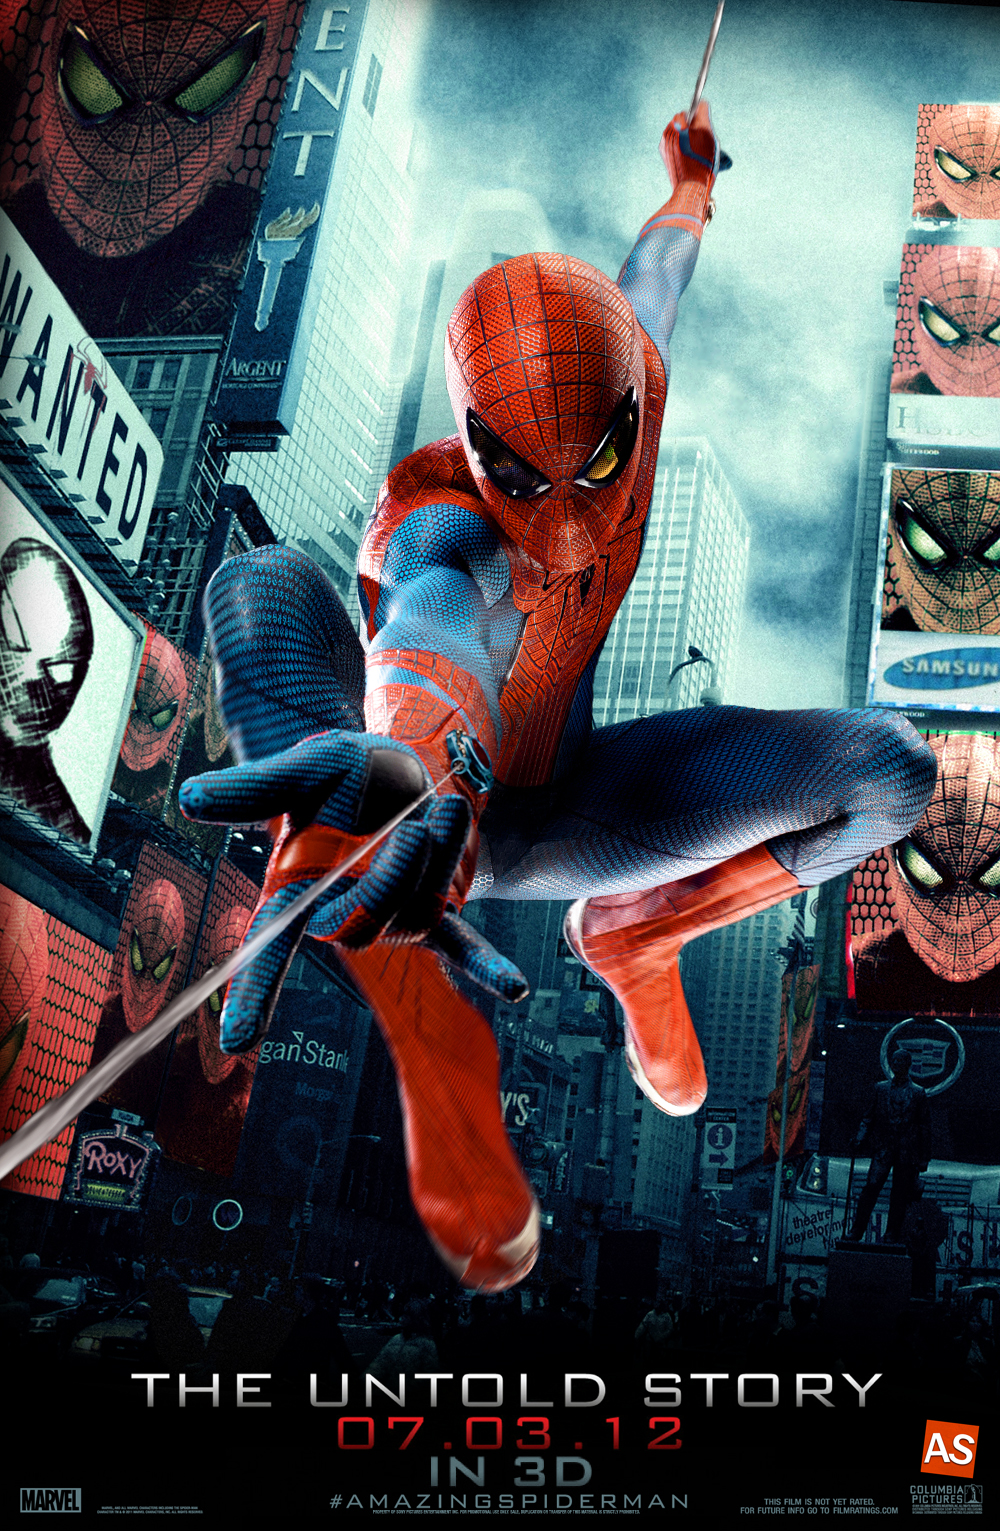 ''the Amazing Spider-Man'' - movie poster by AndrewSS7